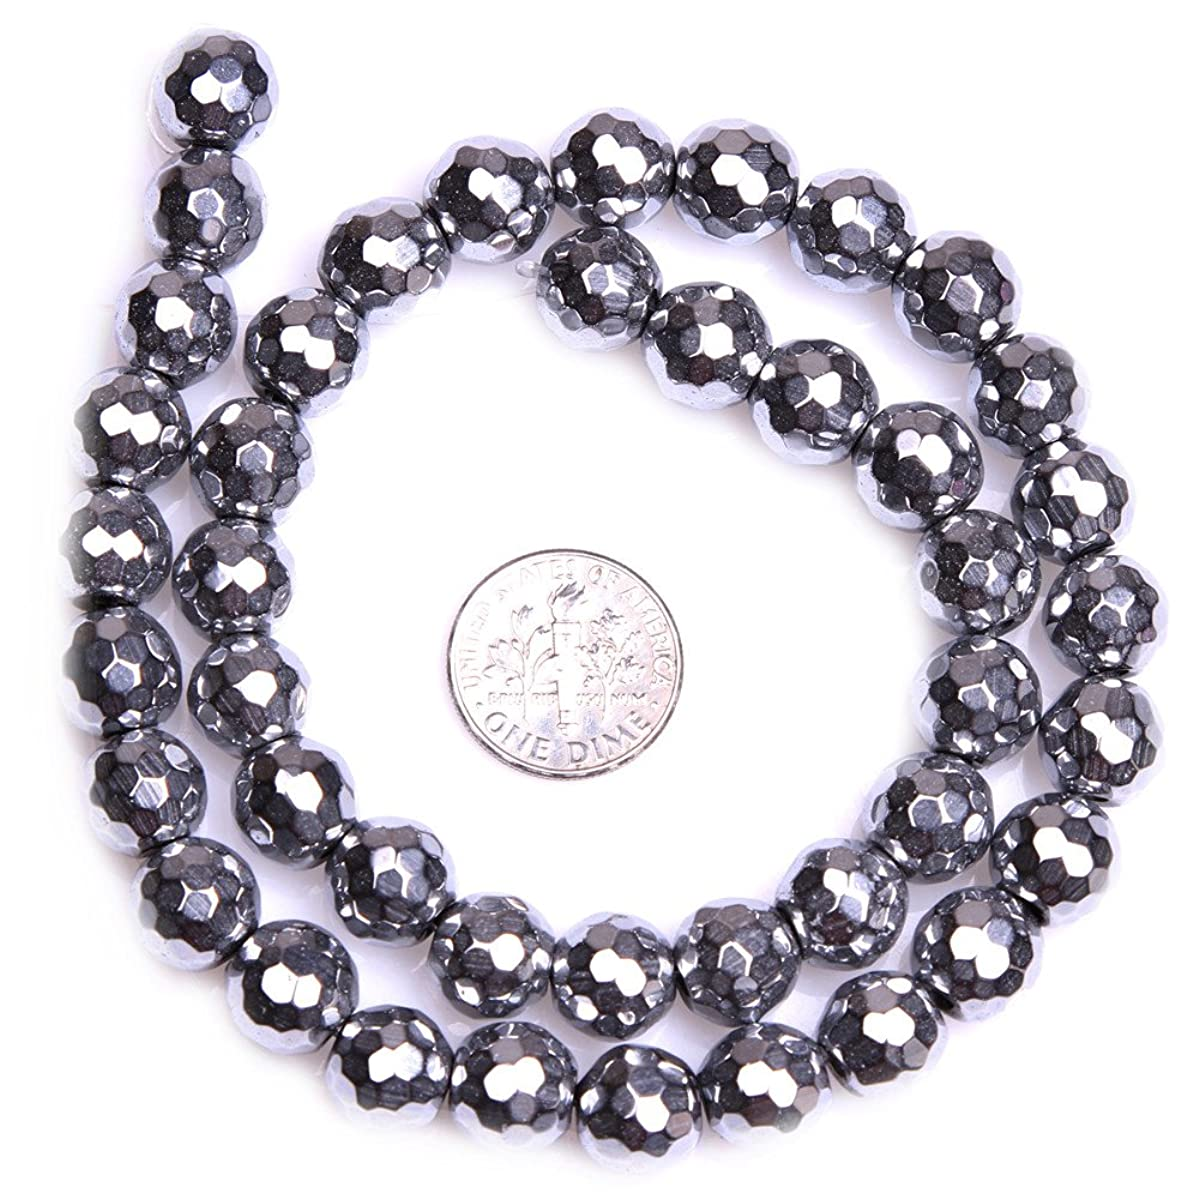 Hematite Beads for Jewelry Making Semi Precious Gemstone 10mm Round Faceted Silver Strand 15